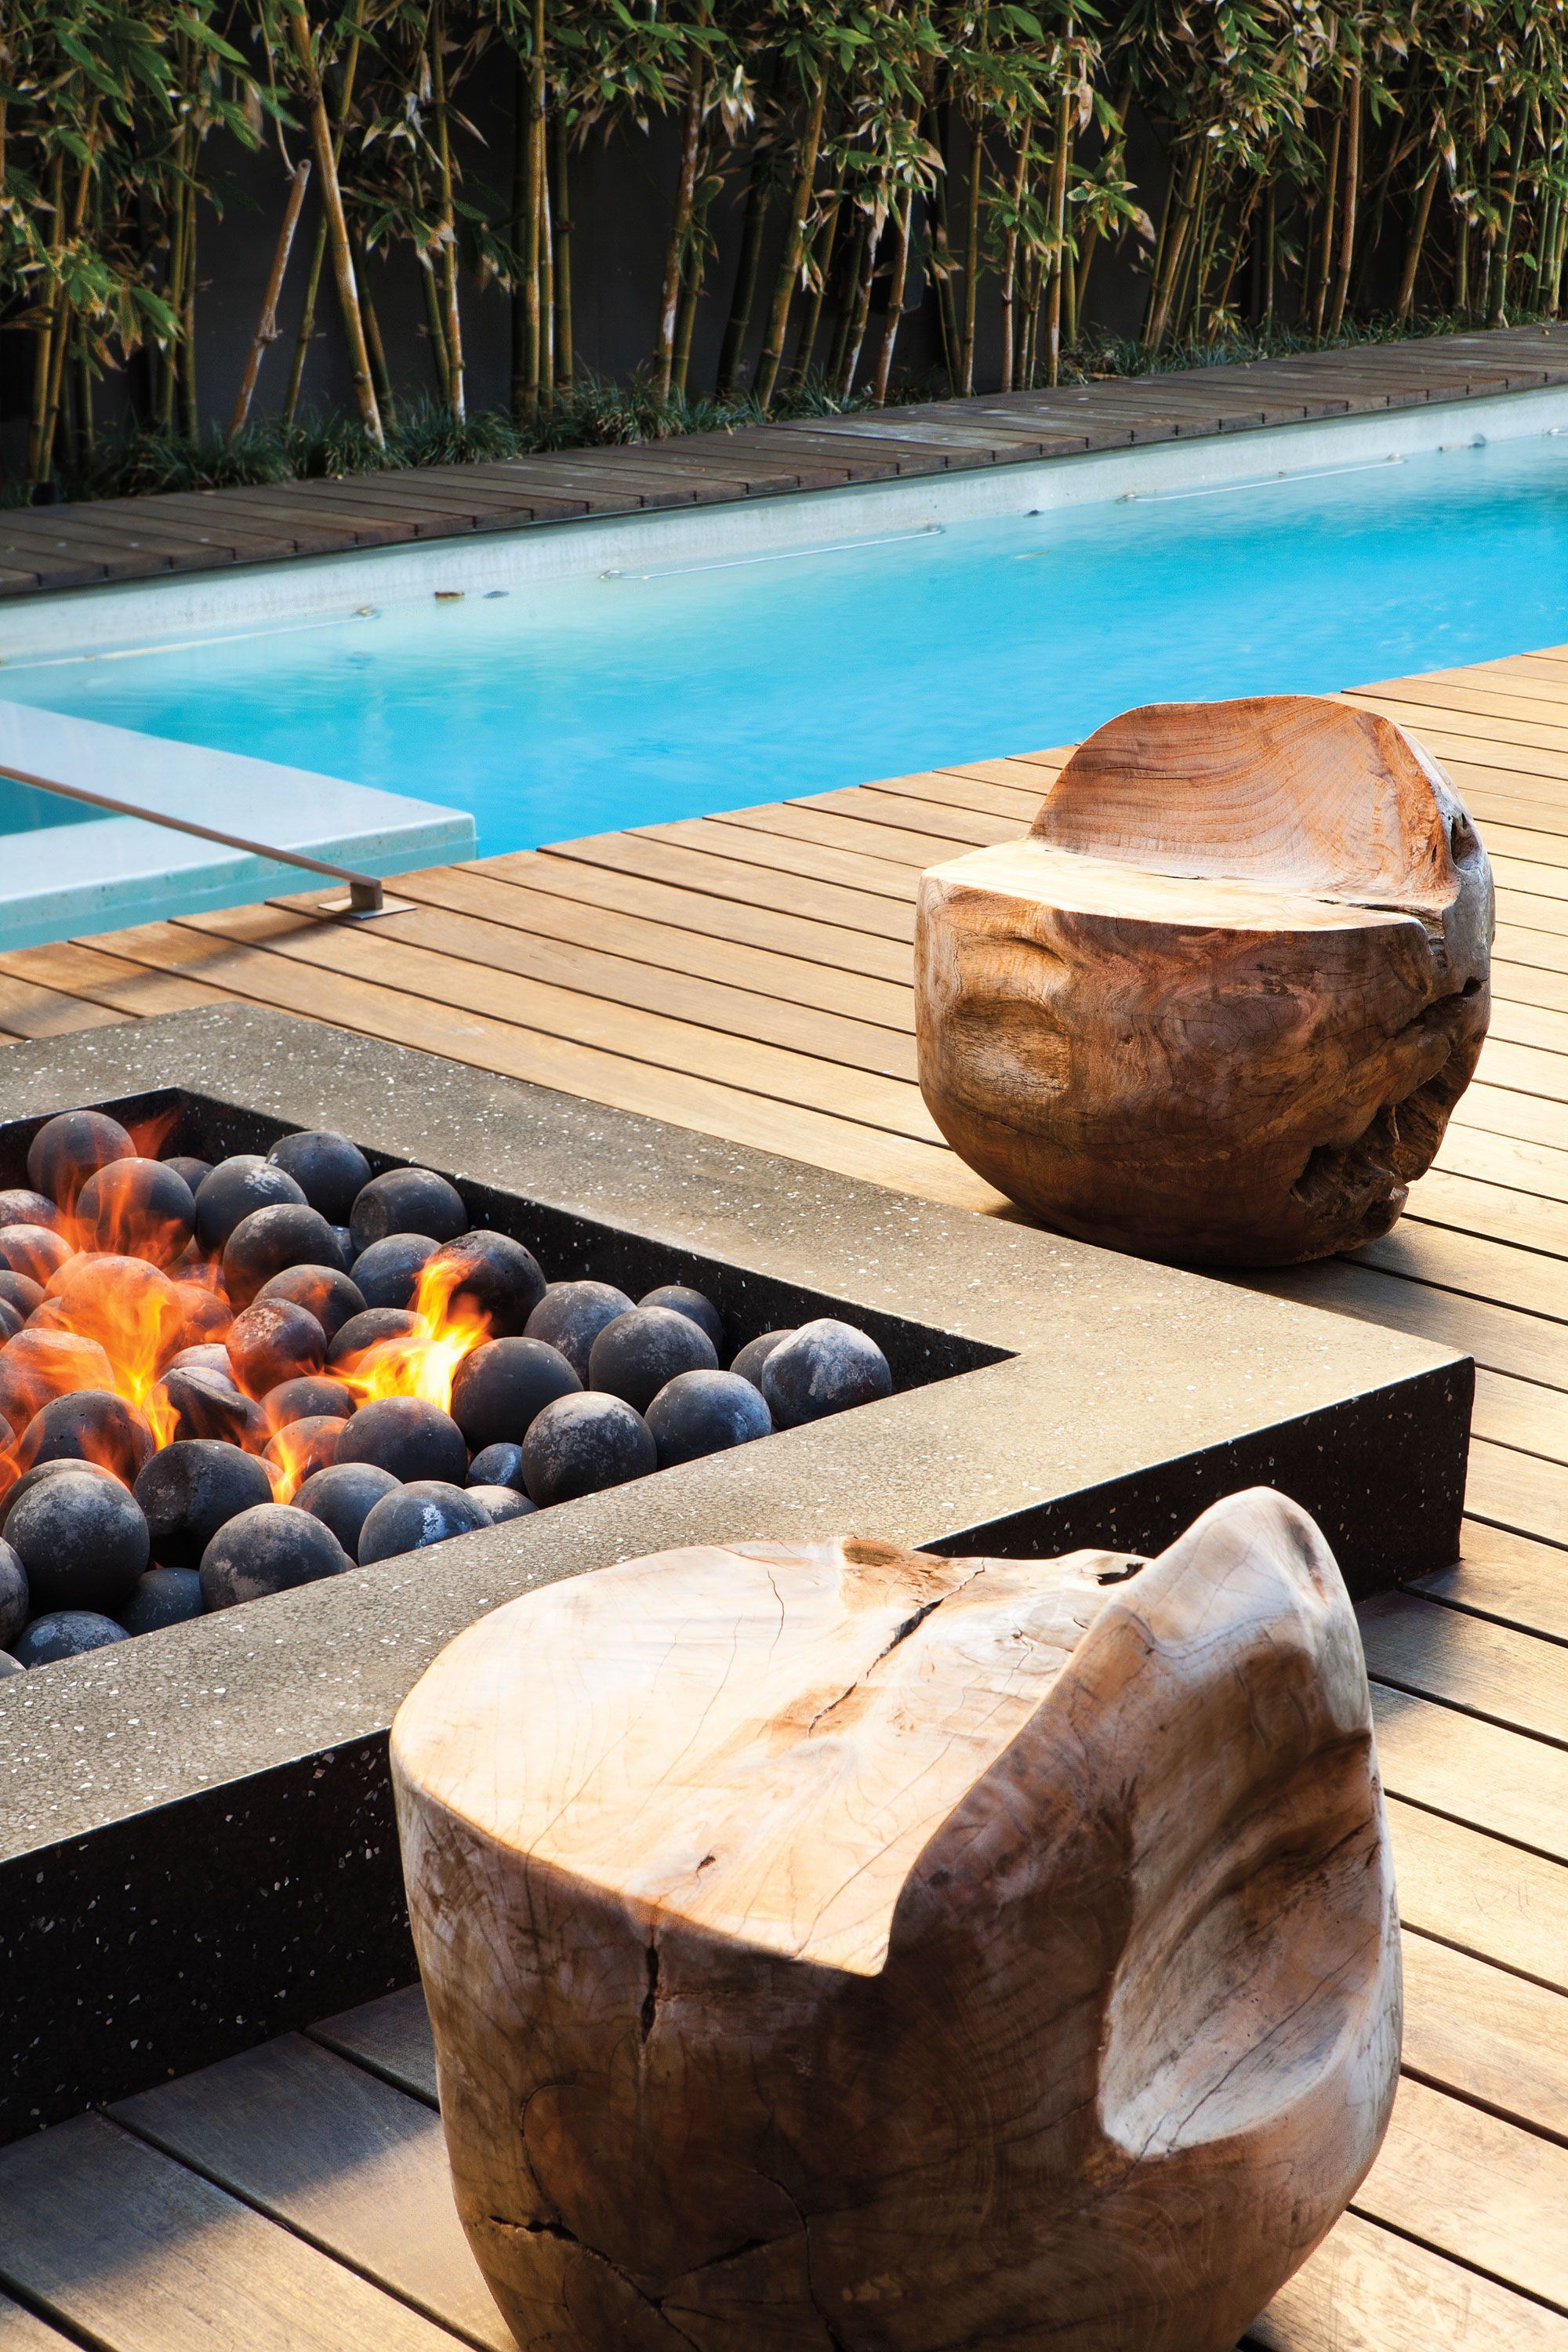 These solid timber seats would be a great attribute to the australian outback inspired communal living space